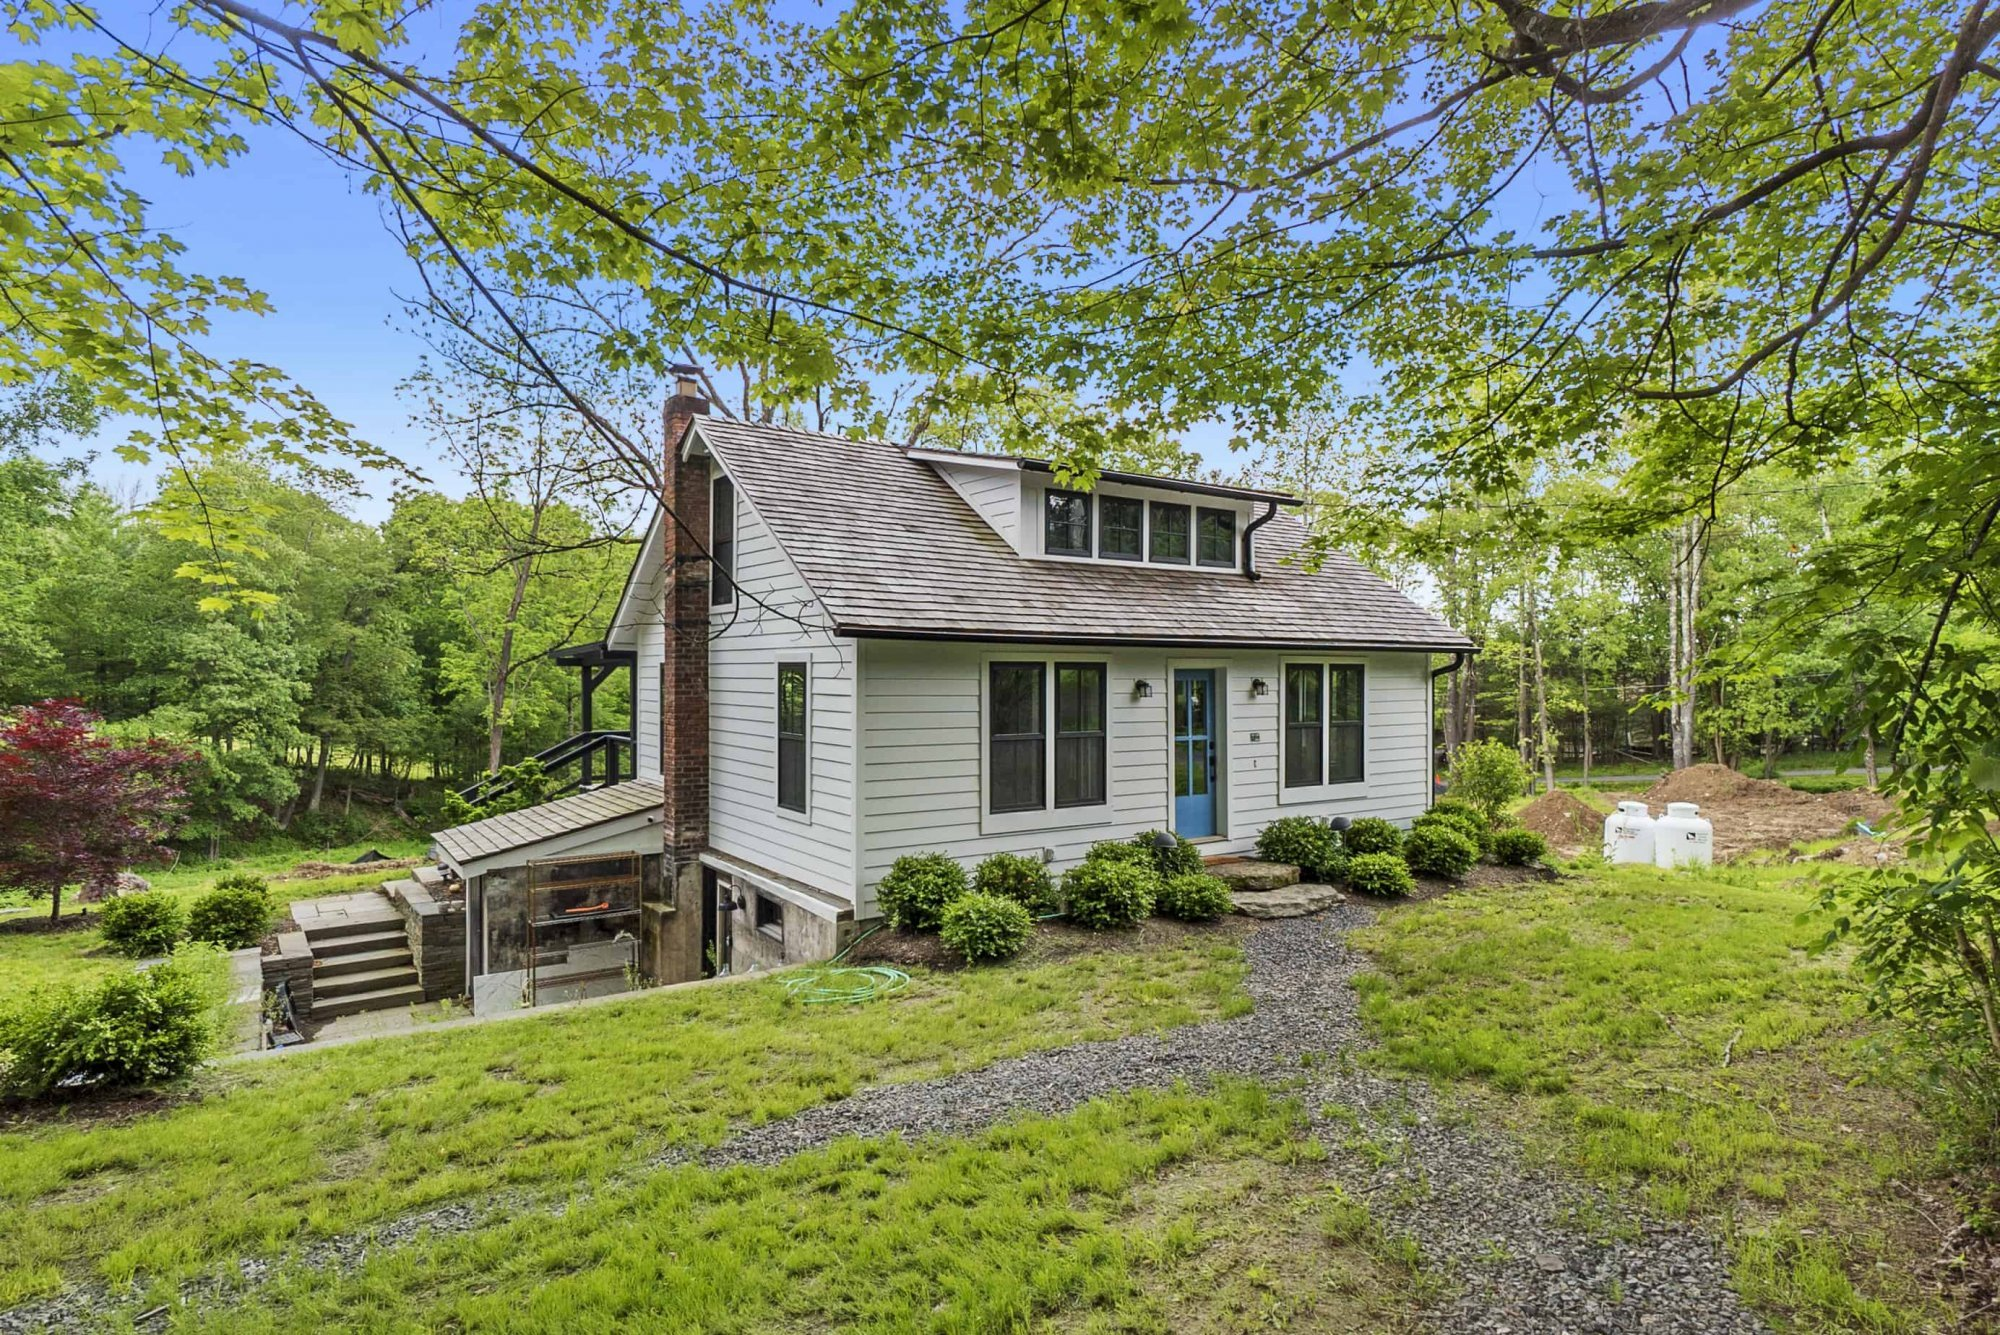 Metropolitan Style In A Country Cottage Package | Upstate NY Real Estate photo